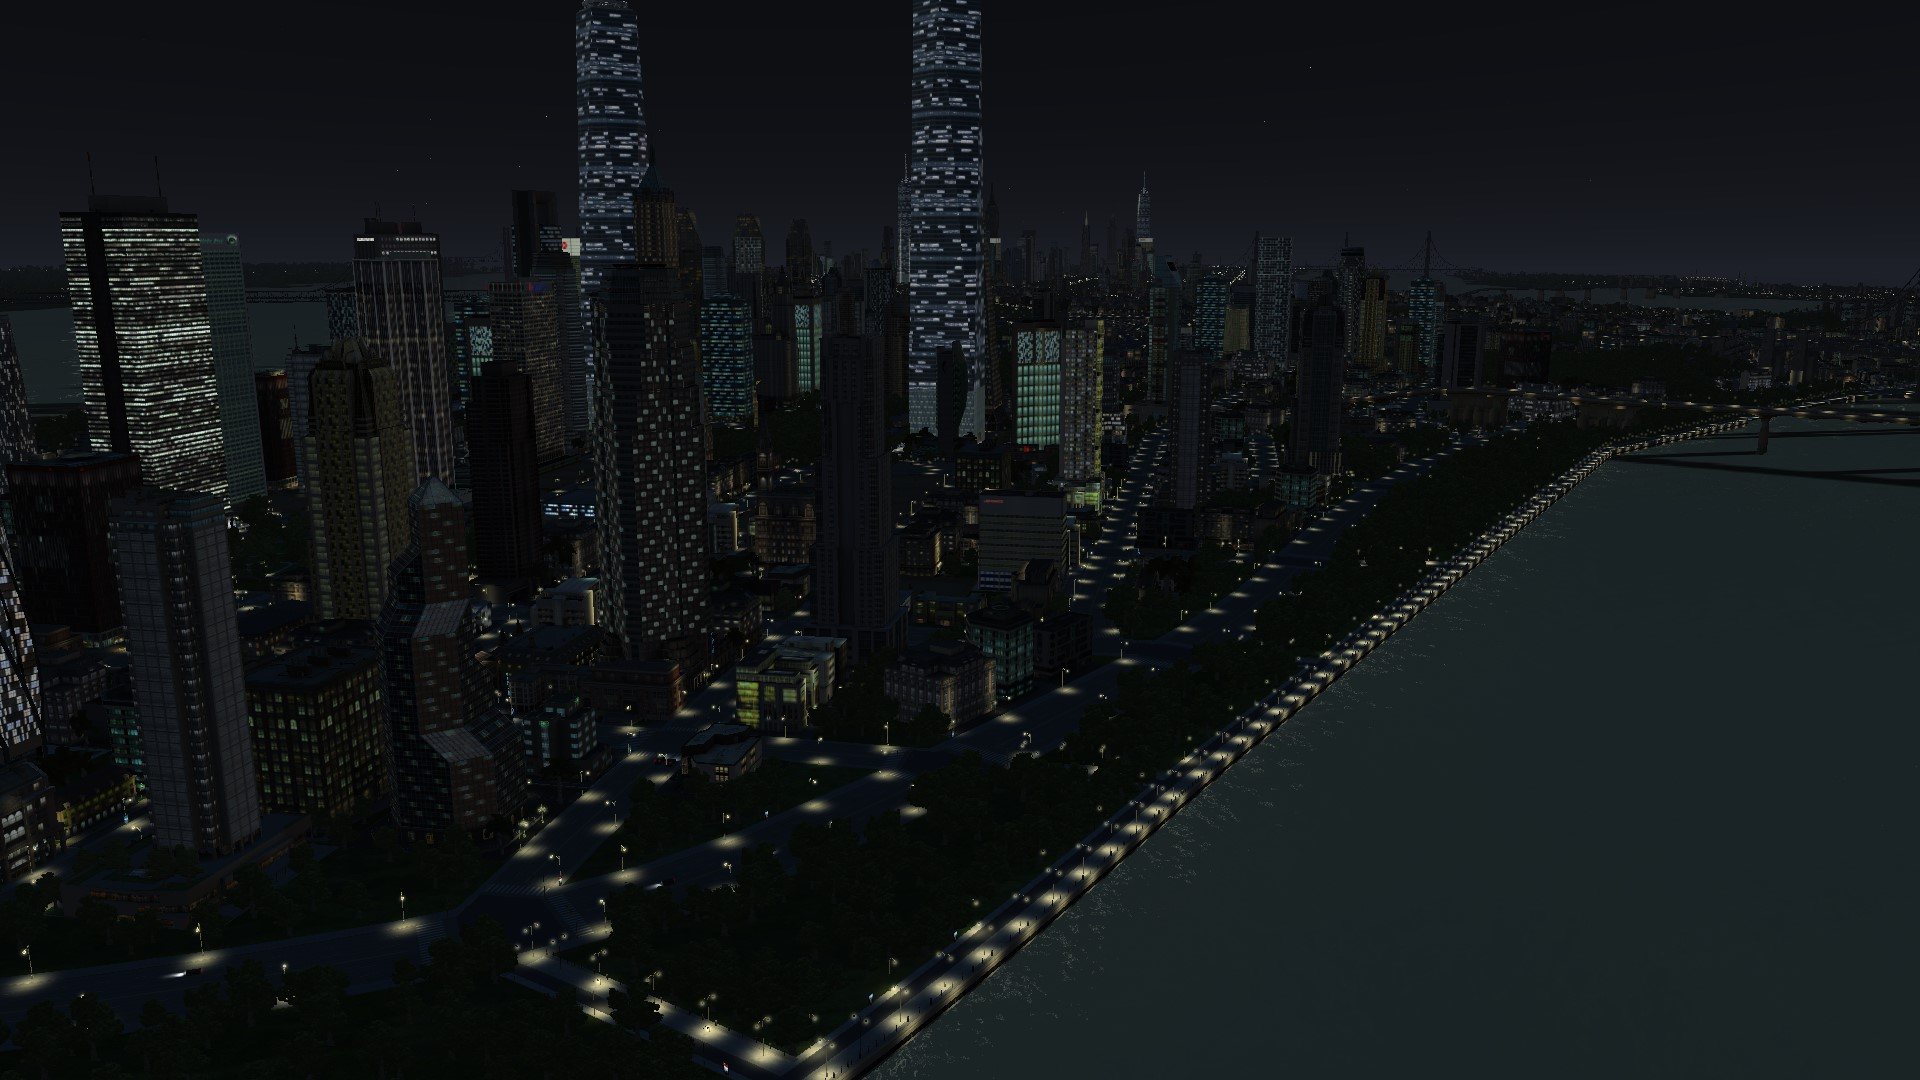 cxl_screenshot_liberty city_40.jpg